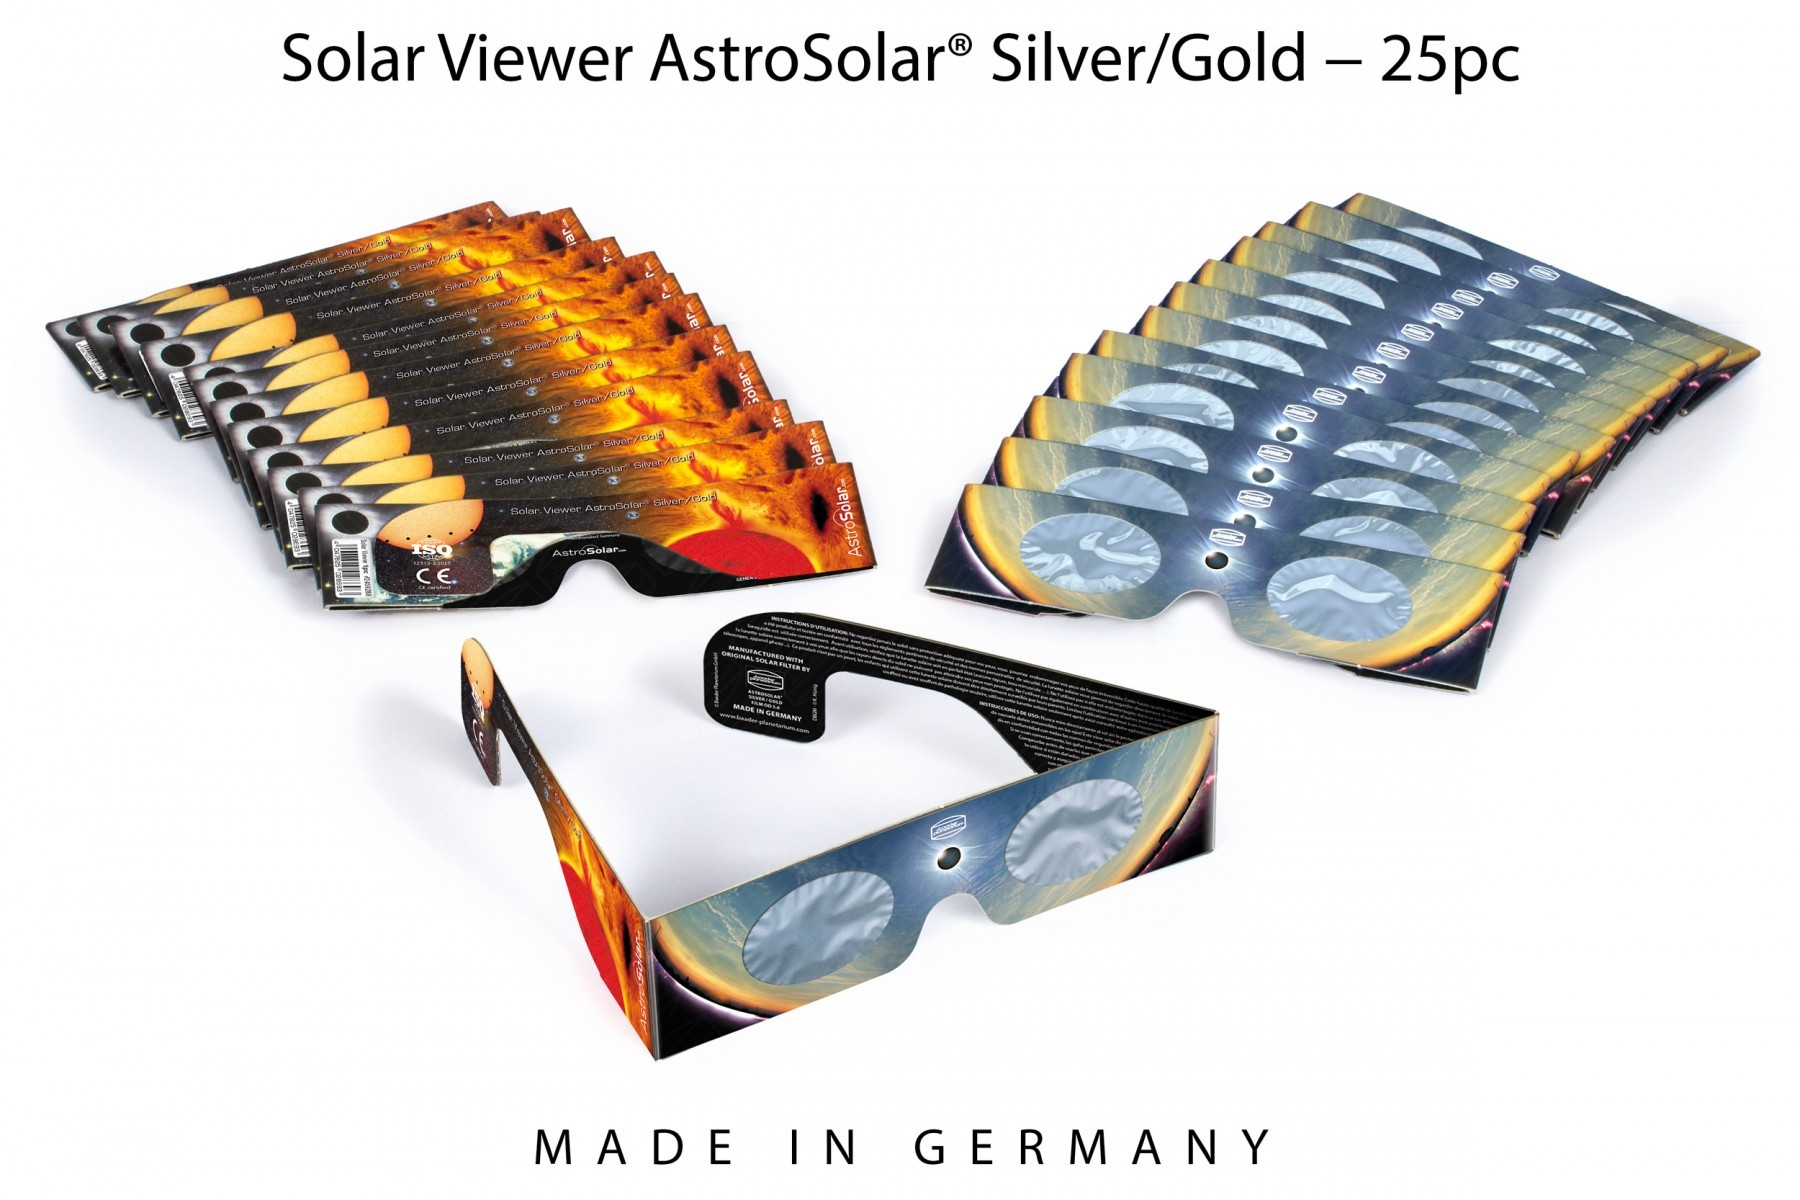 25 pcs Solar Viewer AstroSolar® Silver/Gold